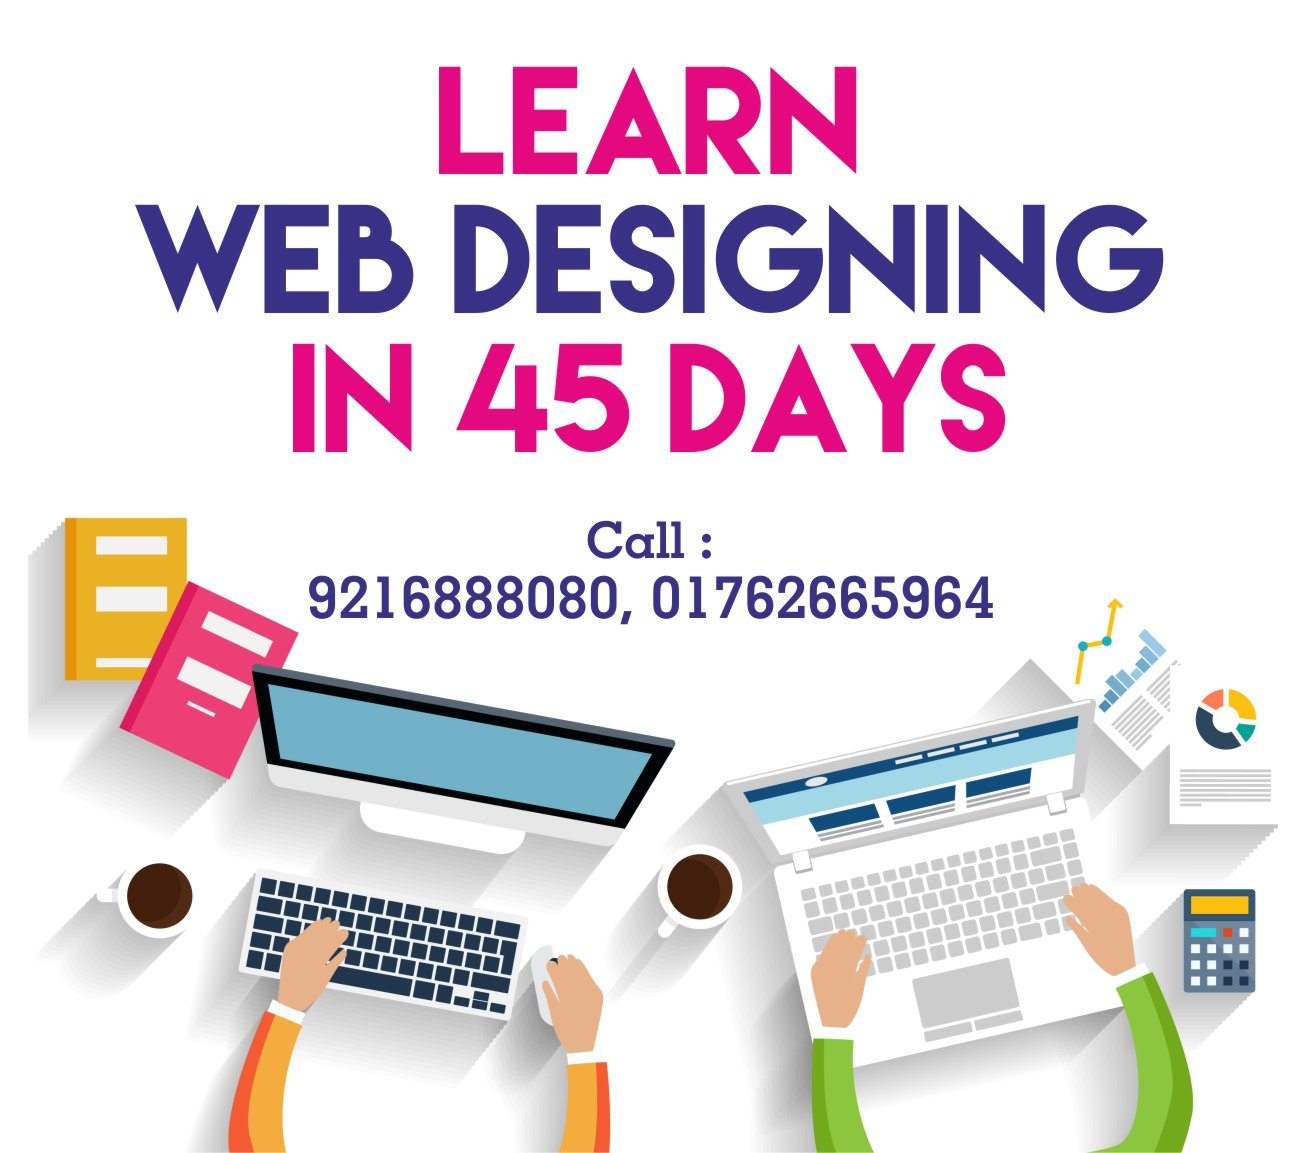 Web designing course in zirakpur for working professionals for How to learn web designing at home free